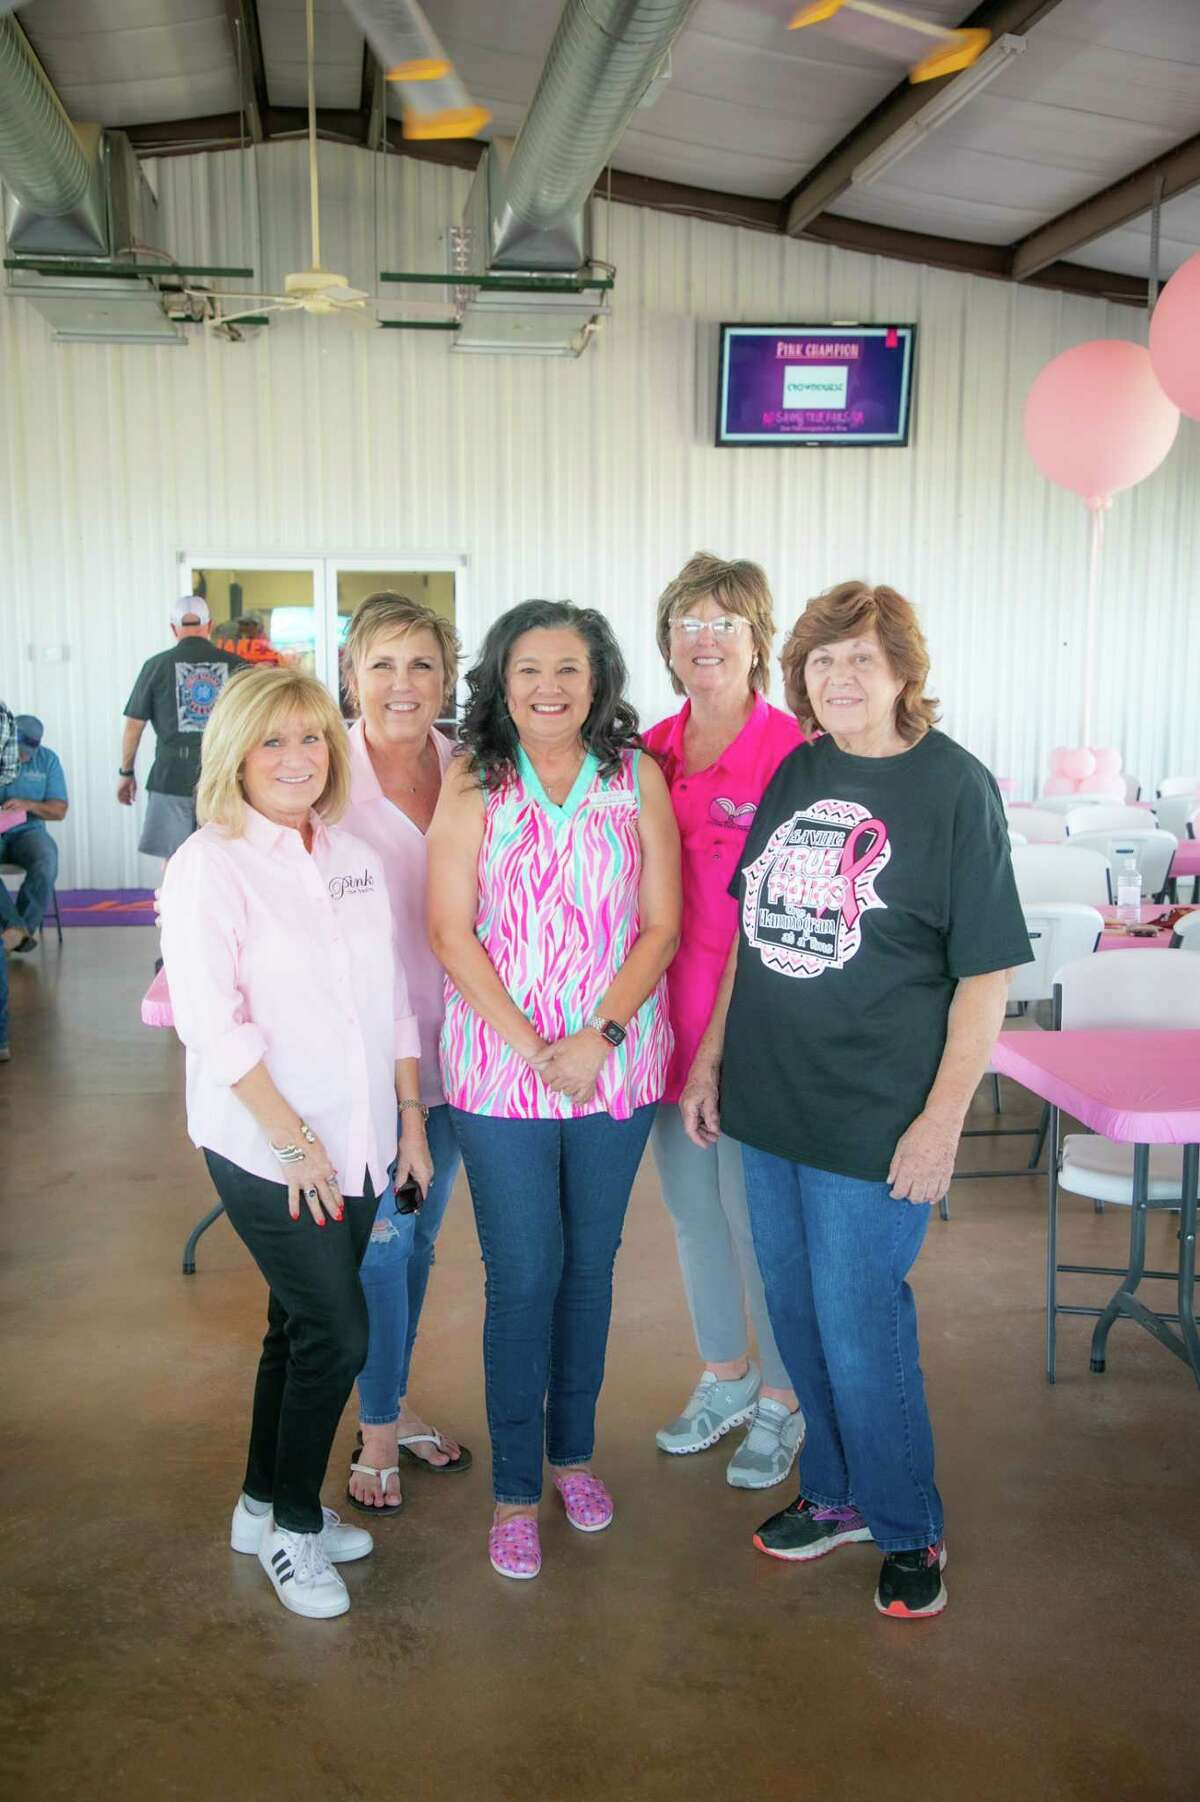 Pink The Basin volunteers photographed during the Saving True Pairs clay shoot benefitting Pint The Basin October 8, 2021 at Jake?•s Clays. MANDATORY CREDIT: The Oilfield Photographer, Inc.